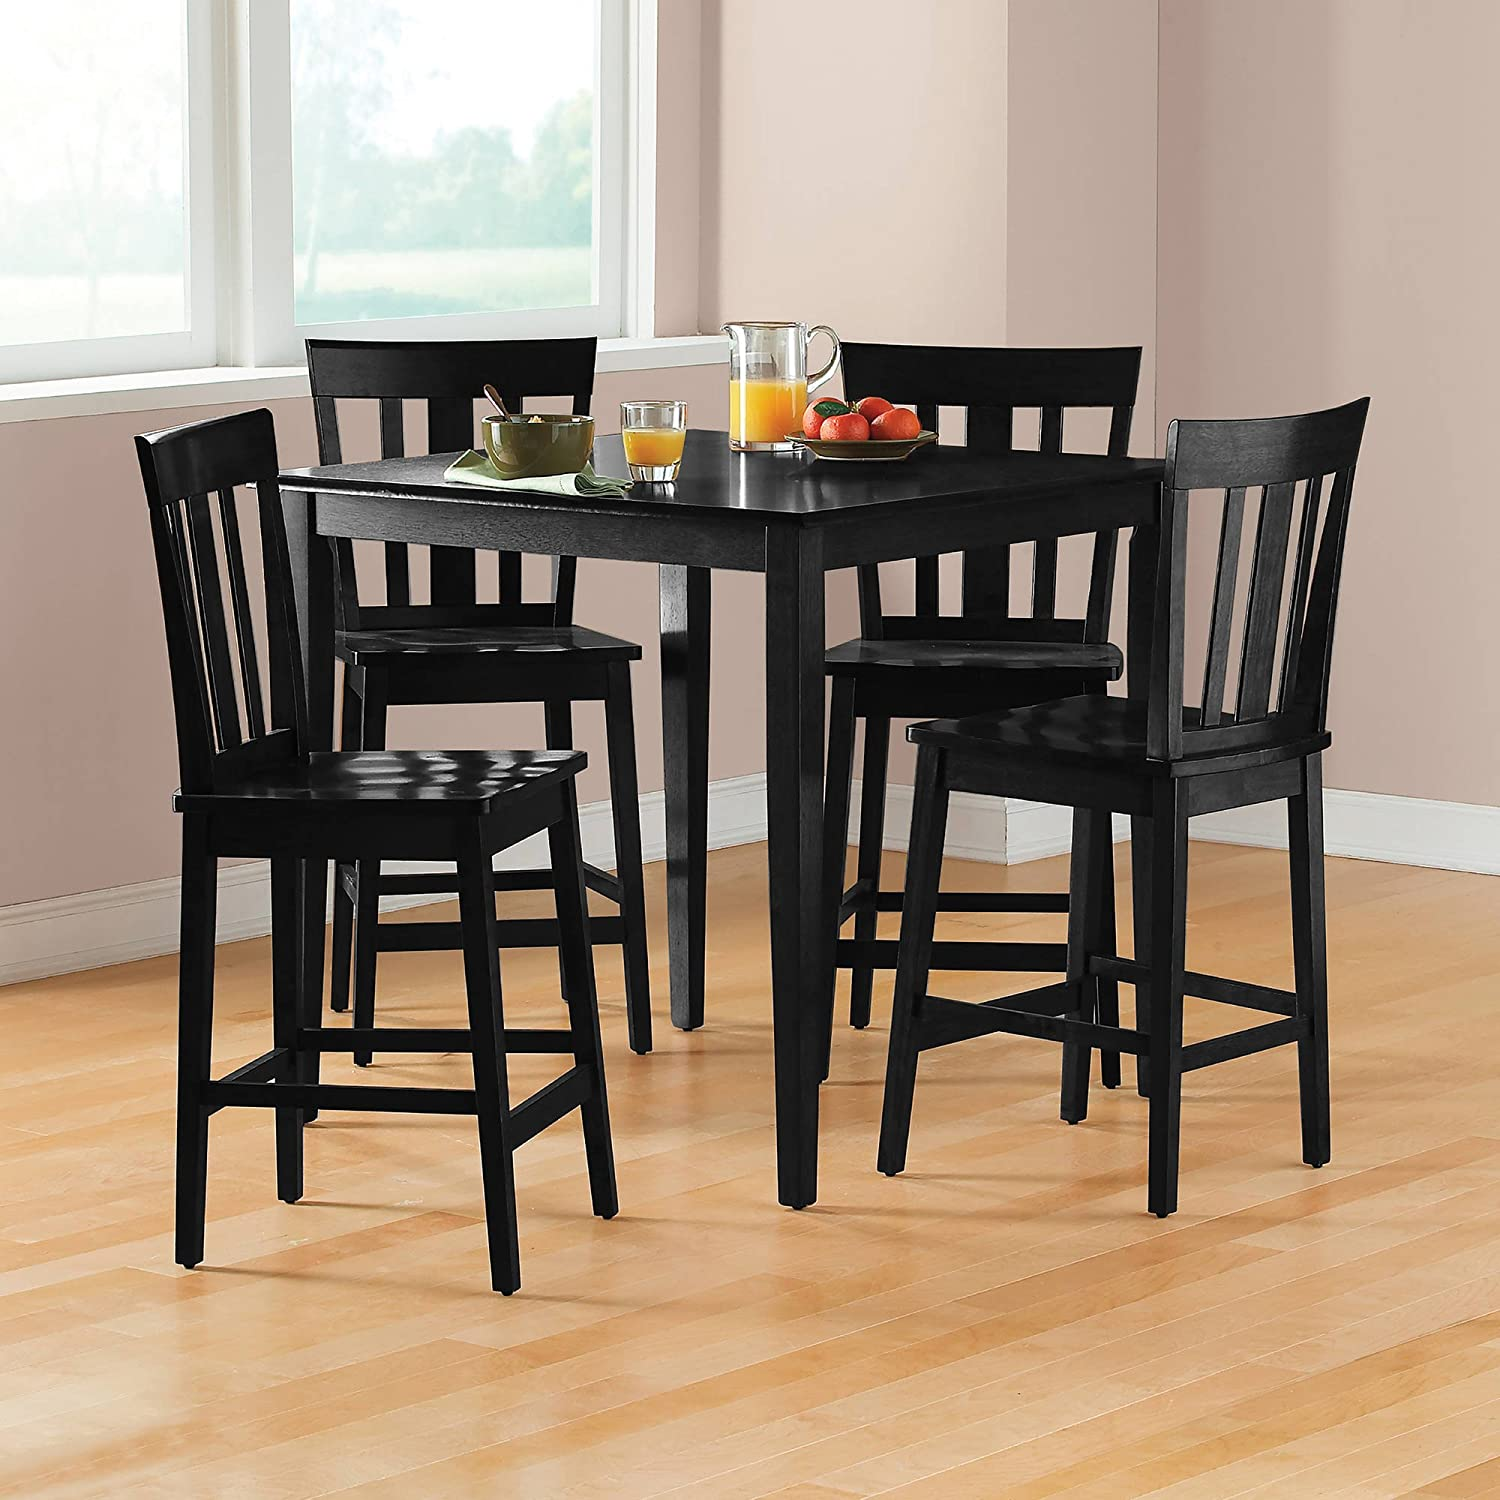 Amazon com mainstays 5 piece counter height dining set black finish table chair sets